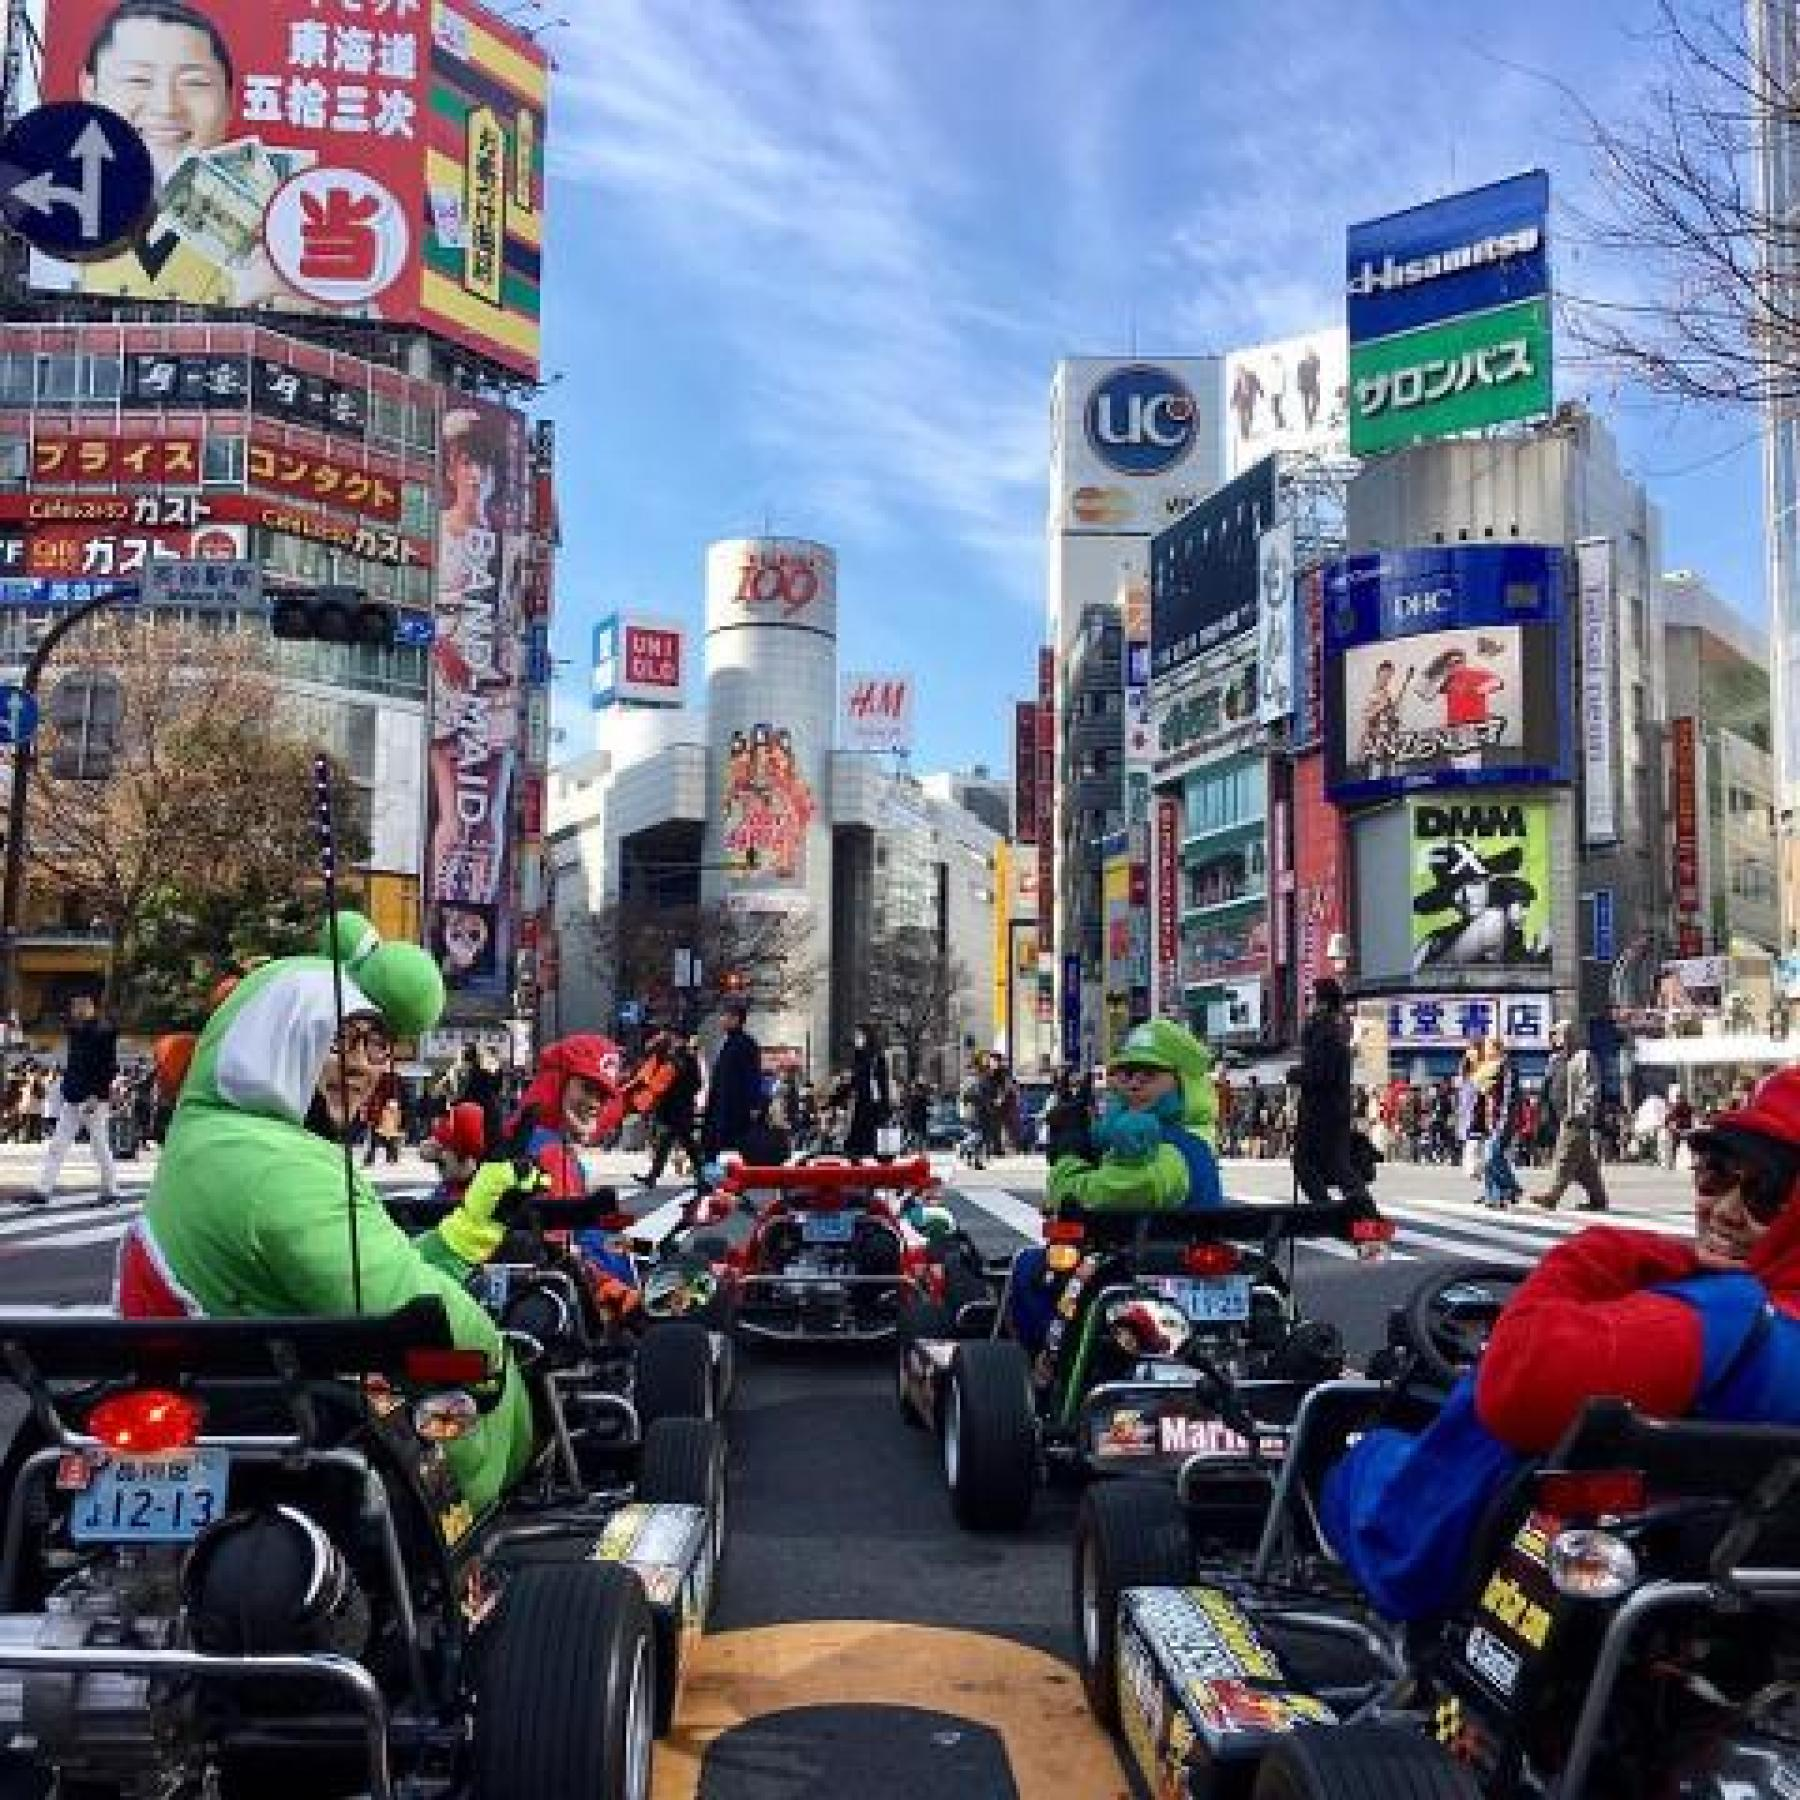 7D6N CNY in Winter Mountains Japan, Cherry Blossoms Okinawa, Tokyo Mario Go Kart starting at Japan